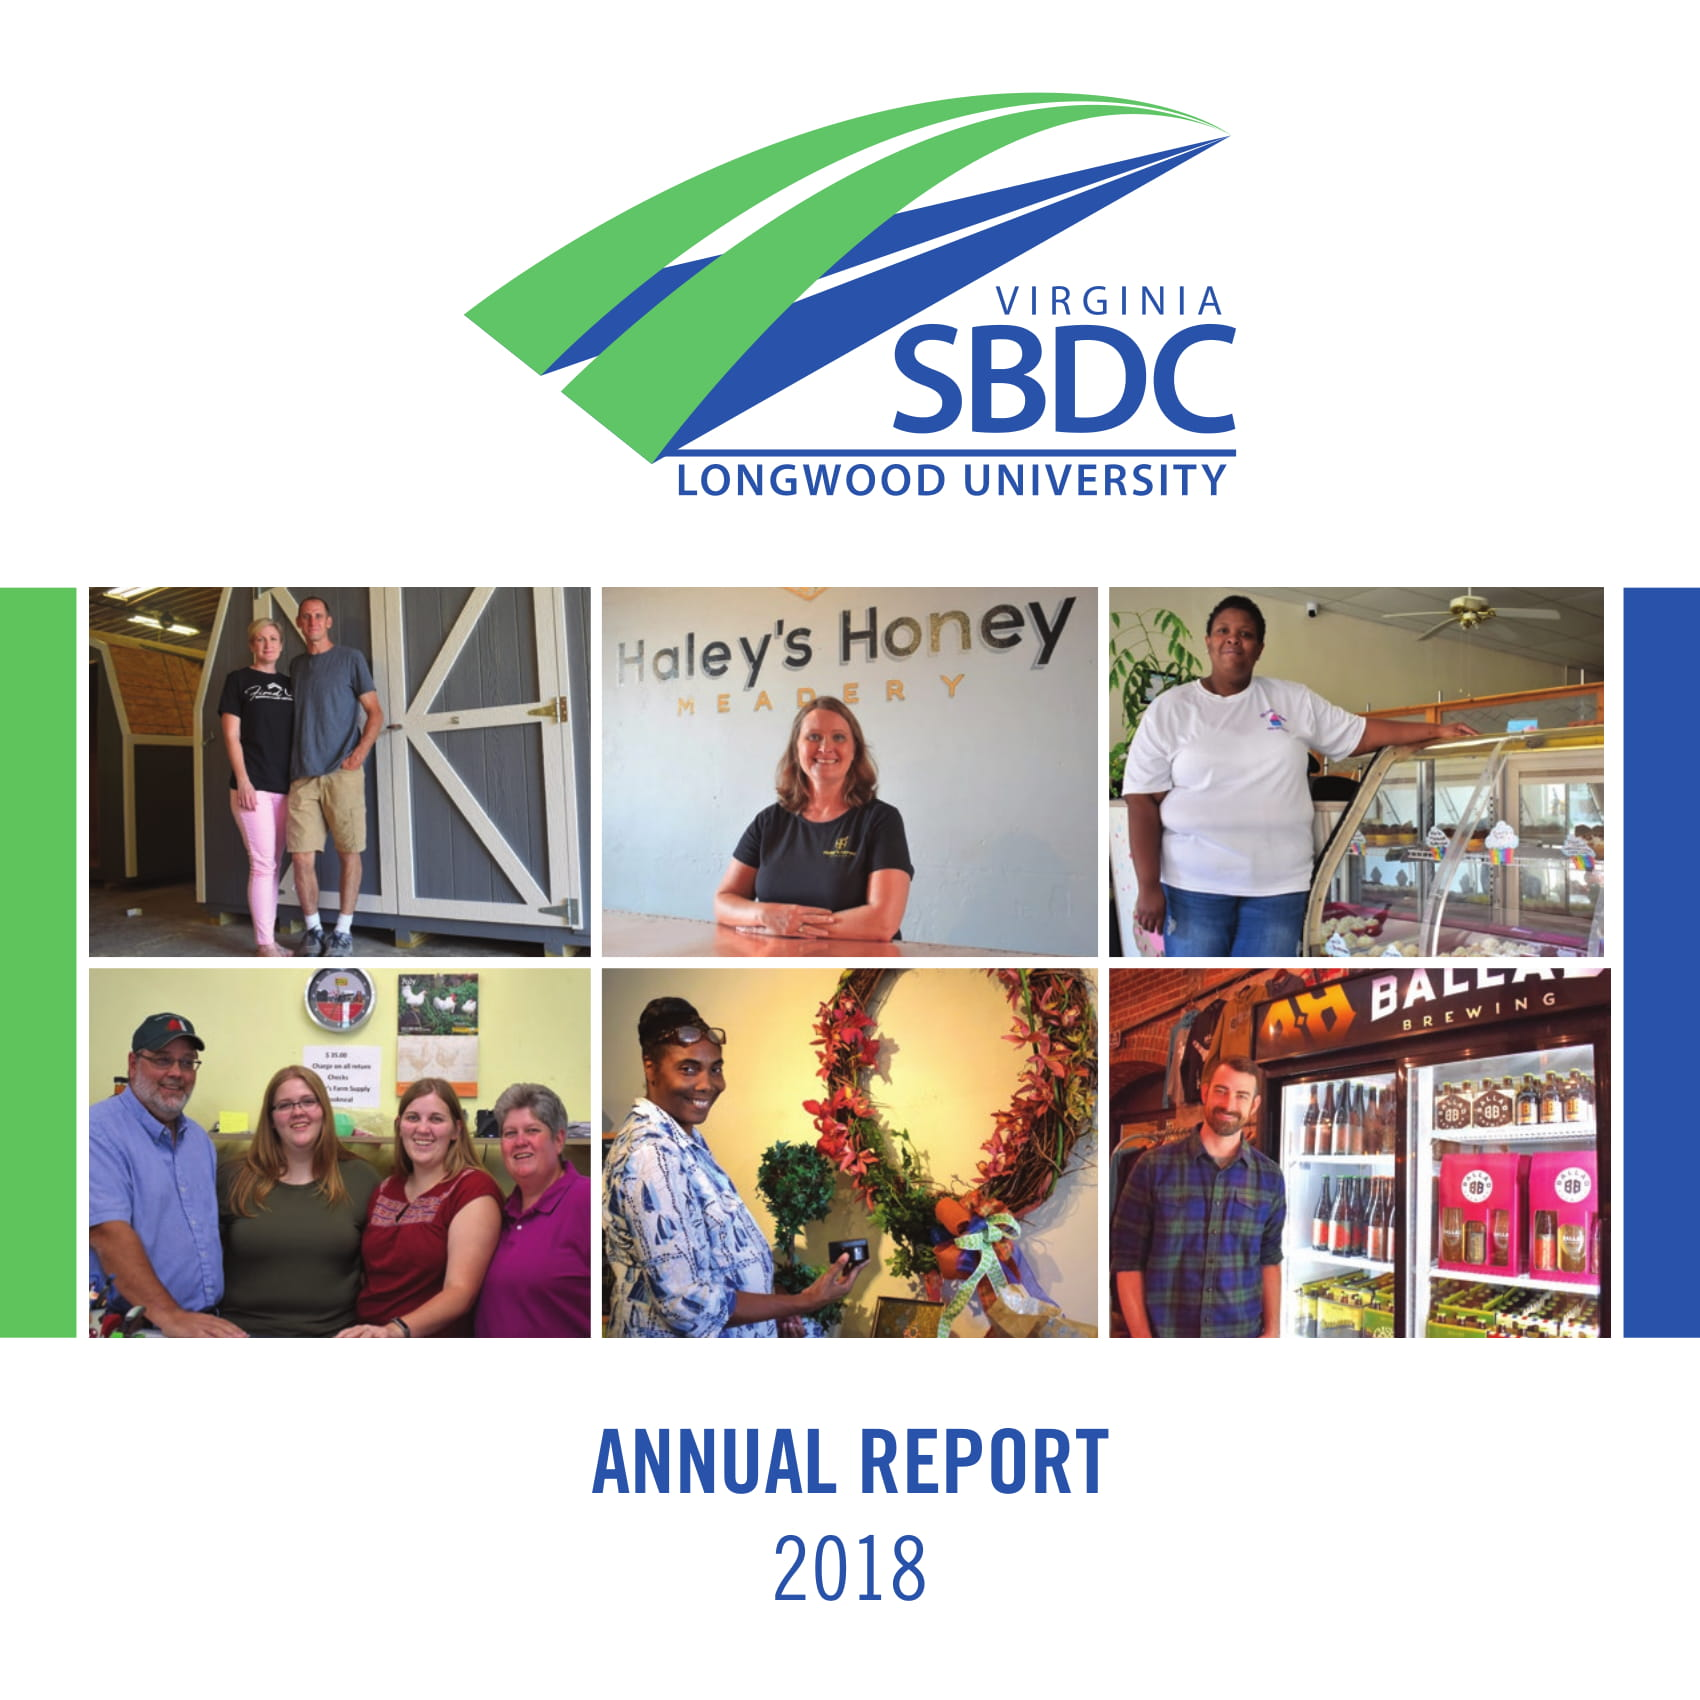 SBDC 2018 Annual Report cover